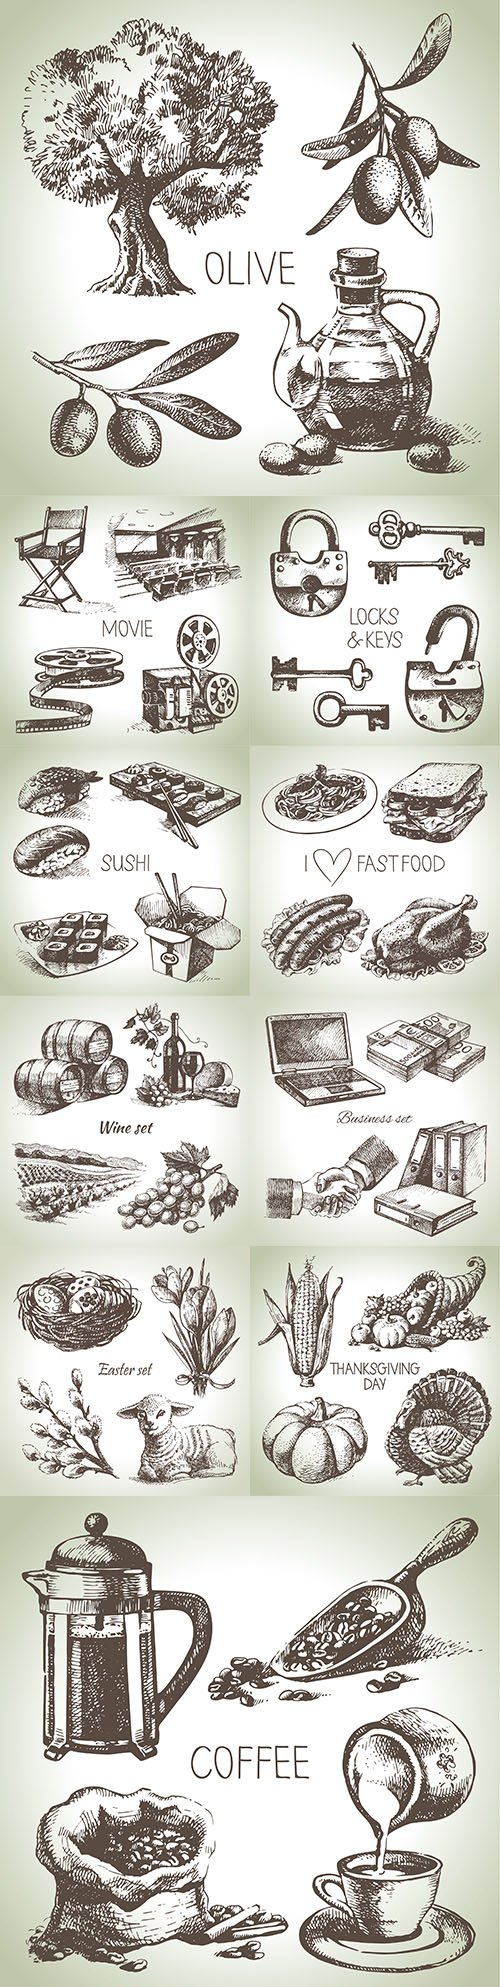 Various hand-drawn illustrations in the engraving style